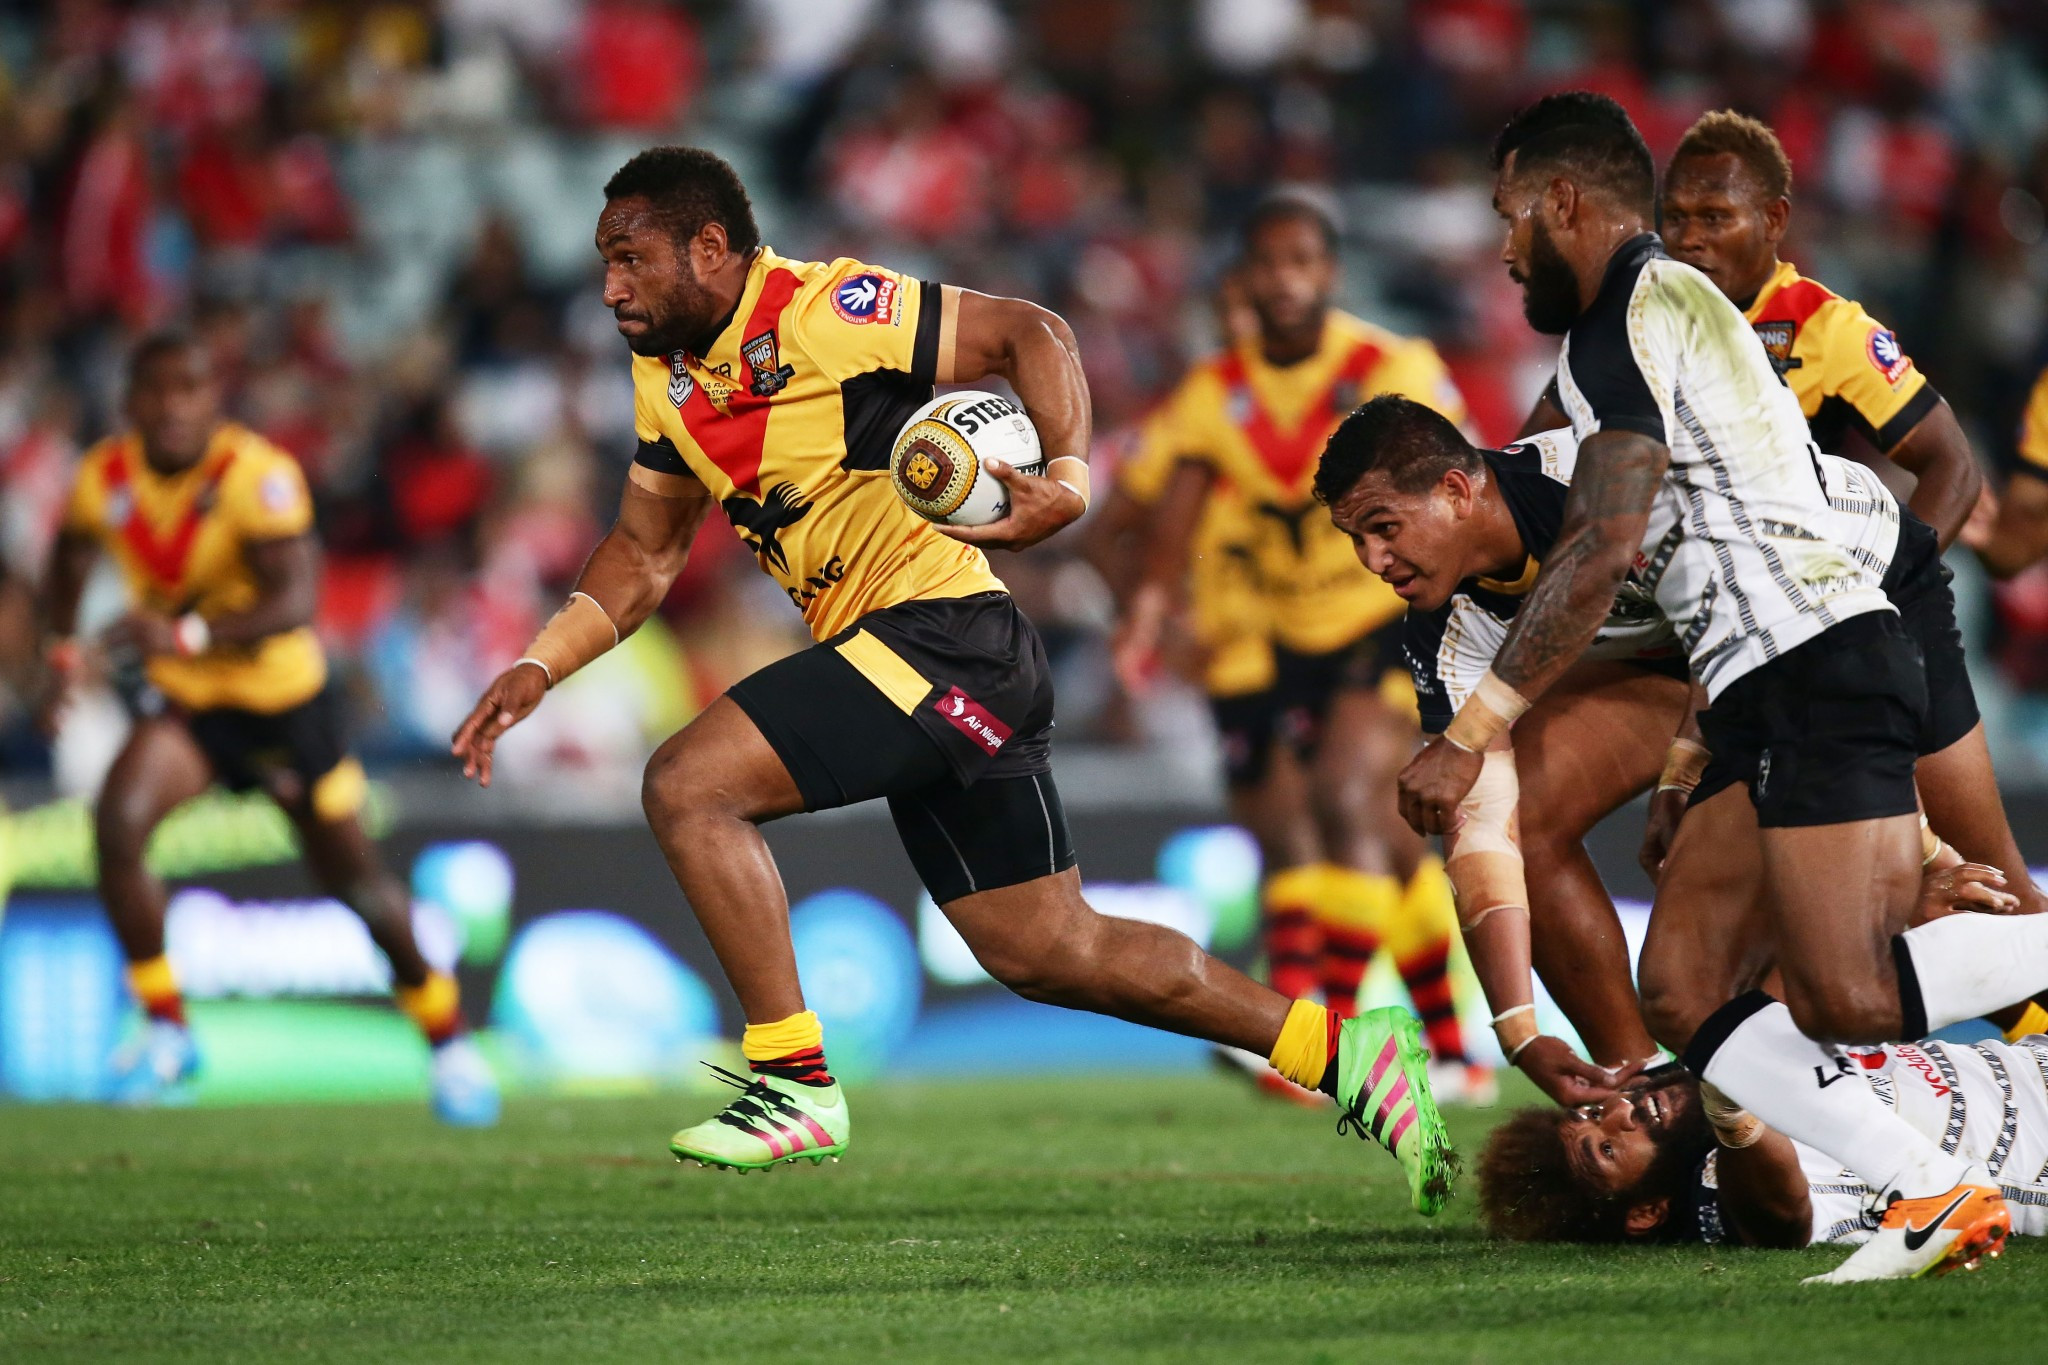 Papua New Guinea will host three games in the group phase of the tournament ©Getty Images